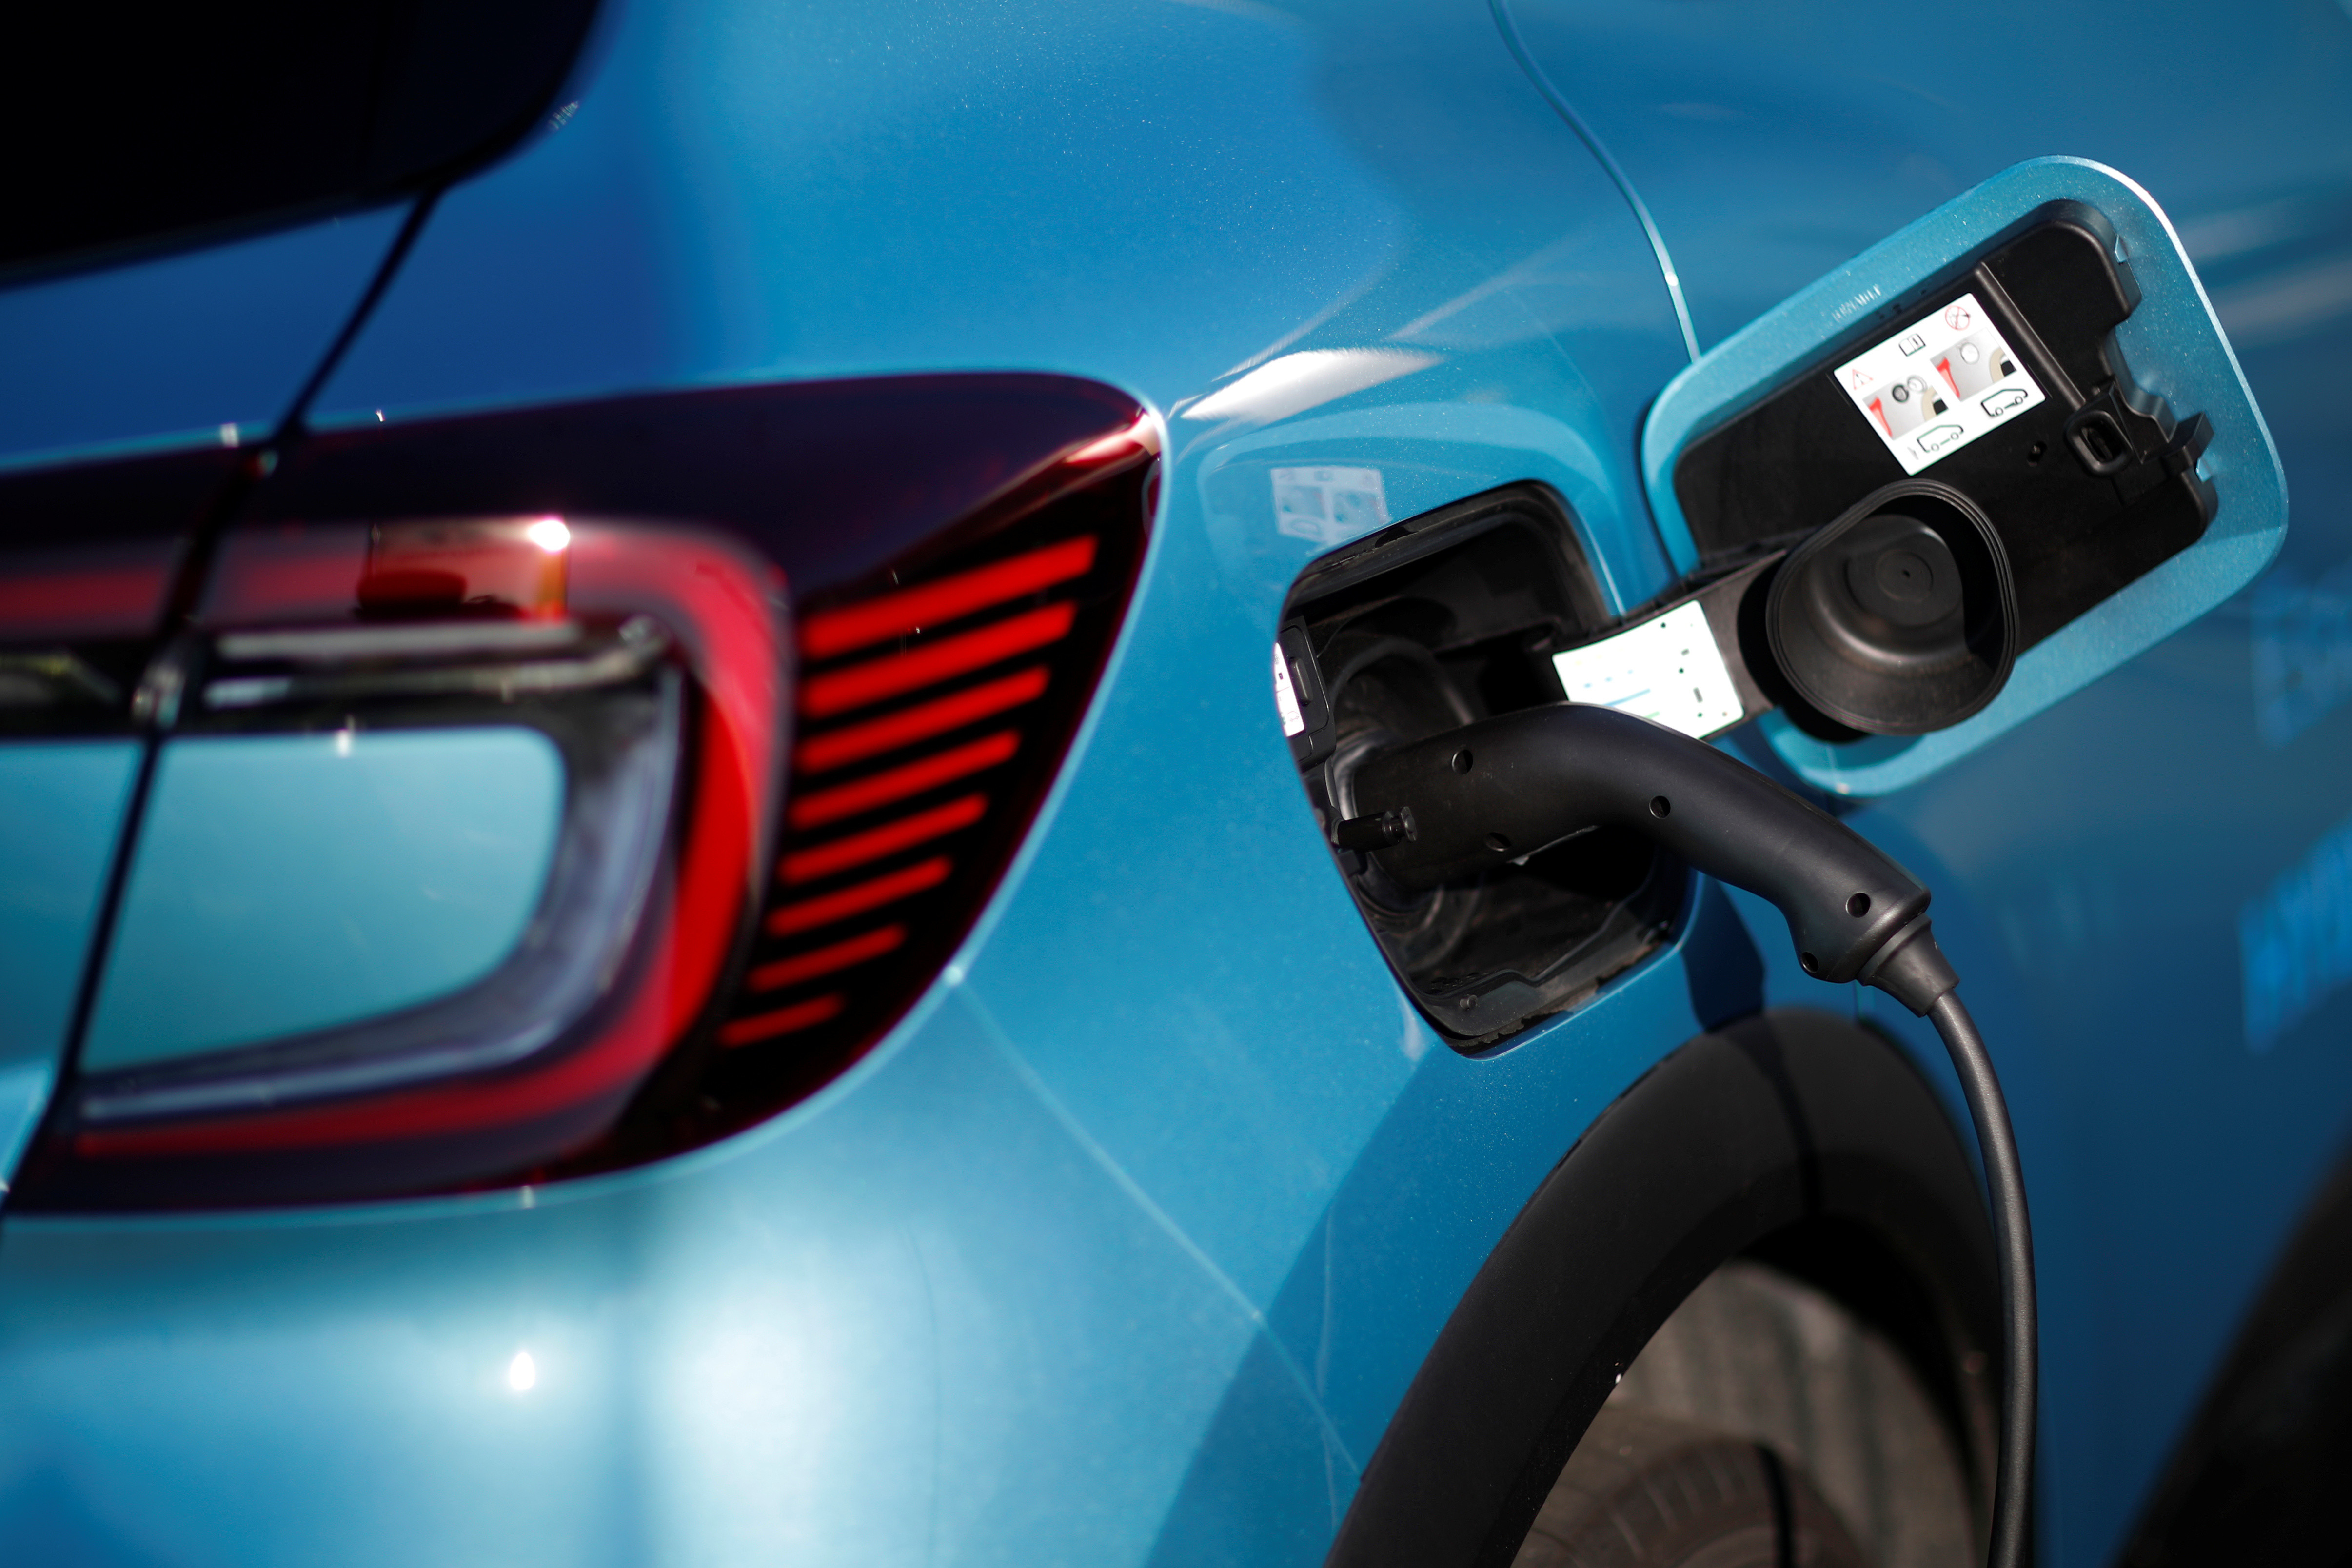 A Renault Captur hybrid car is seen connected to a charging point at a dealership in Les Sorinieres, near Nantes, France, October 23, 2020. Picture taken October 23, 2020.  REUTERS/Stephane Mahe - RC2UUJ9A0IG6